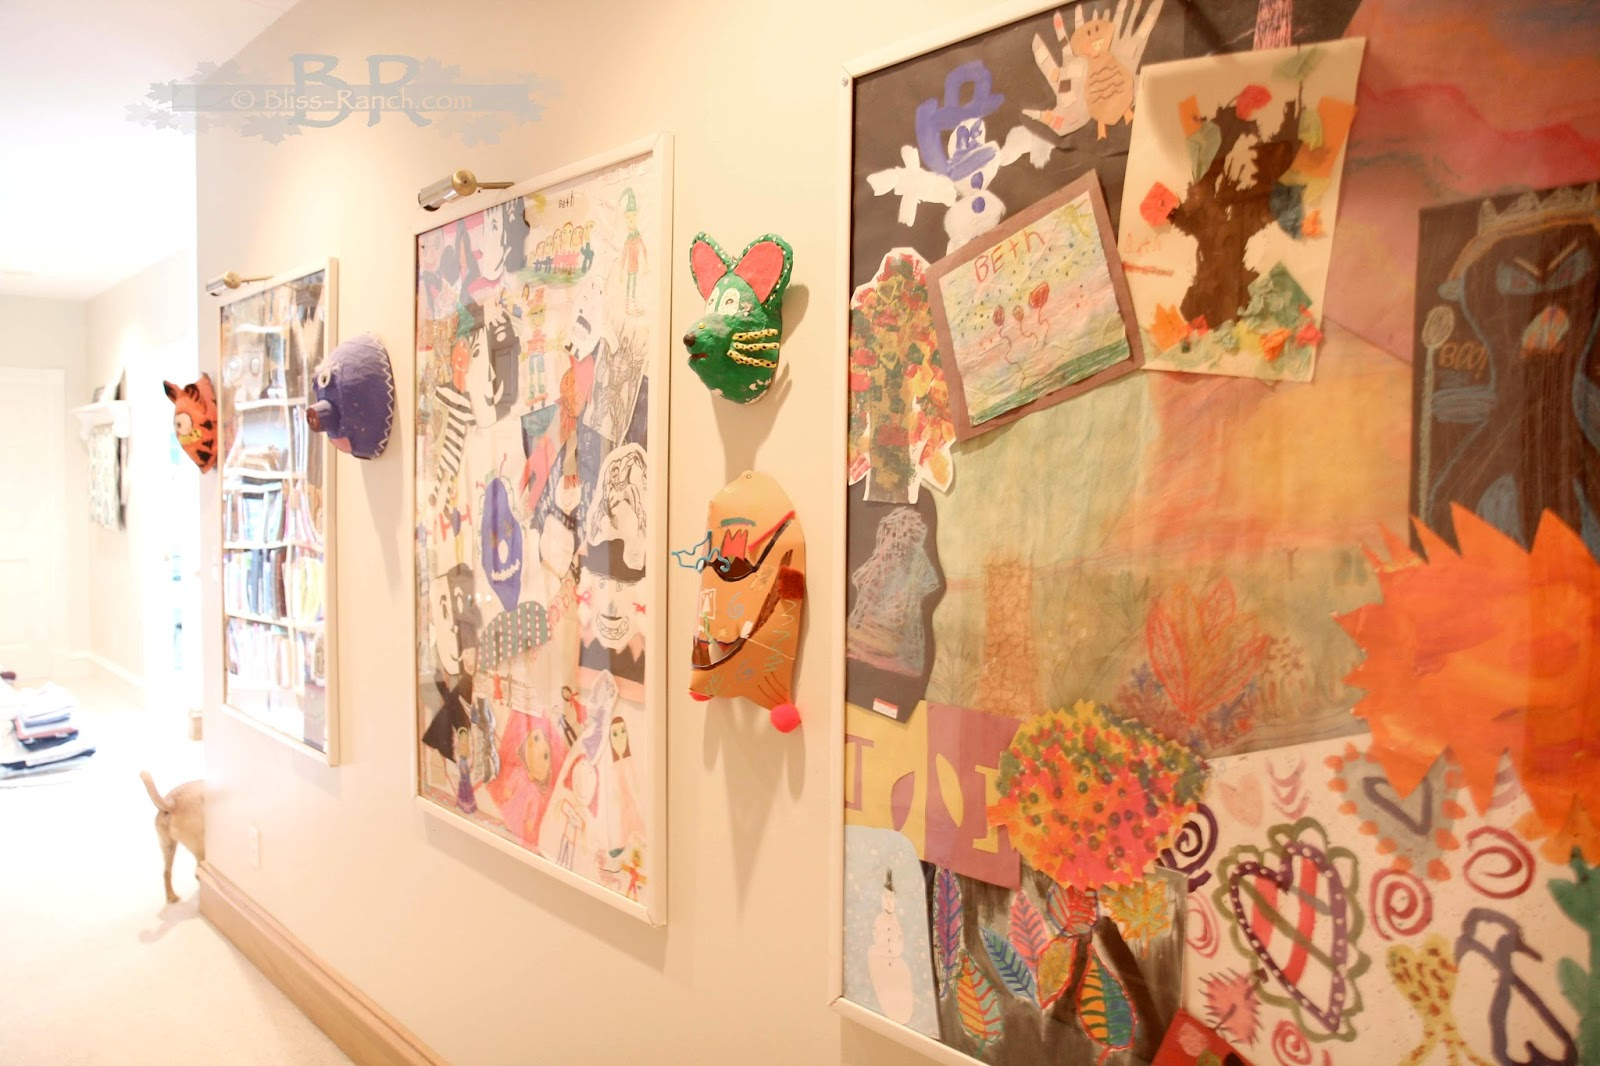 Kids Art Work Gallery Collage Bliss-Ranch.com